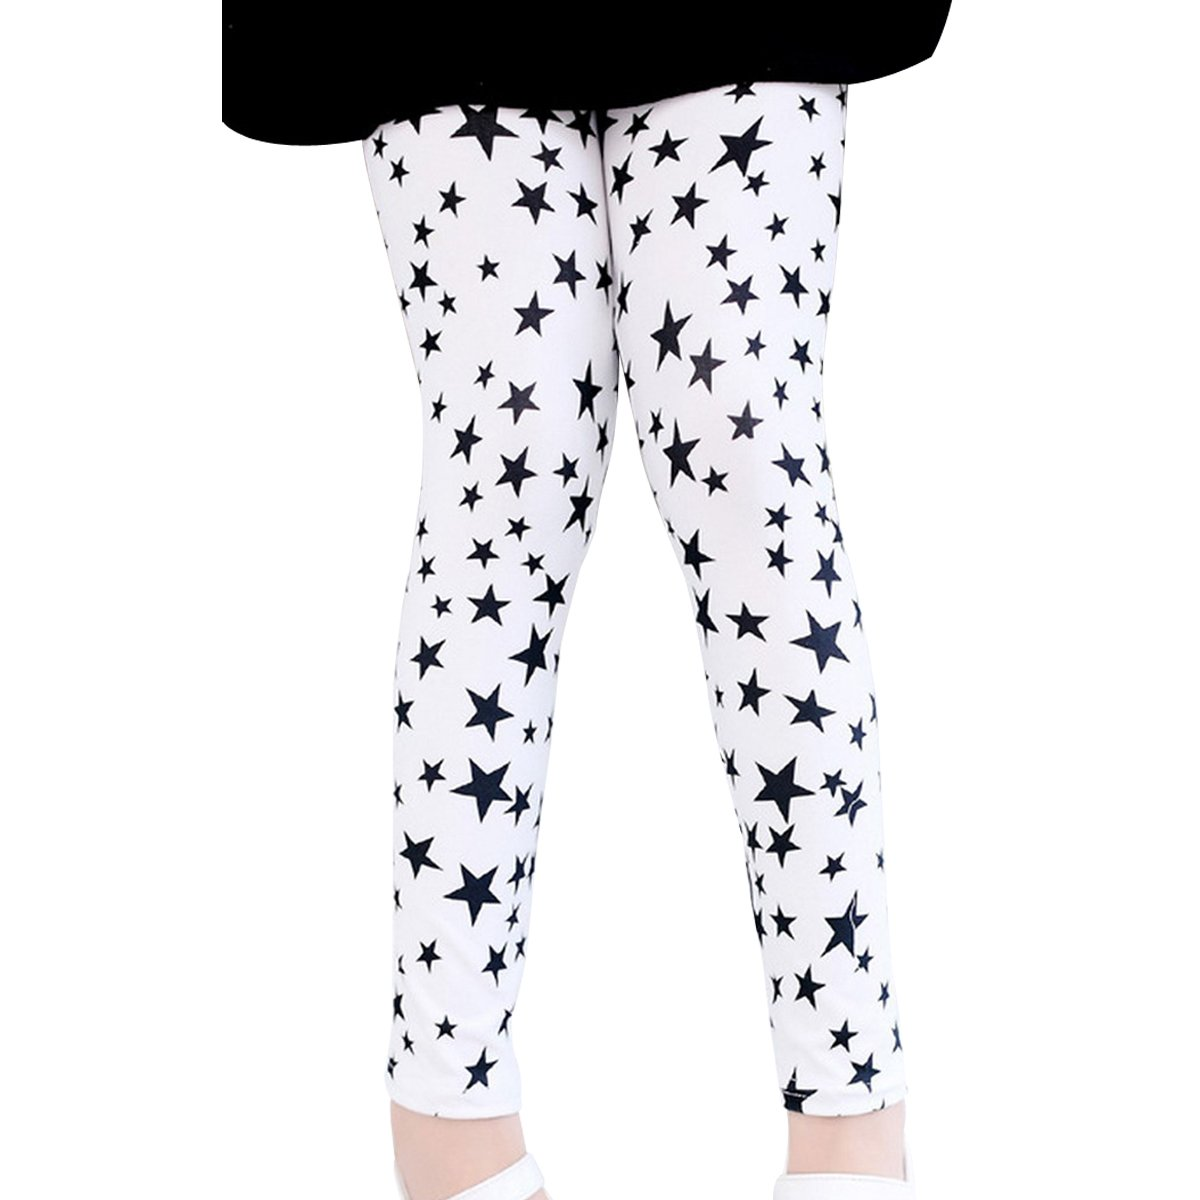 Aivtalk Little Girls Fashion Cute Warm Star Print Elastic Legging Pants White 7